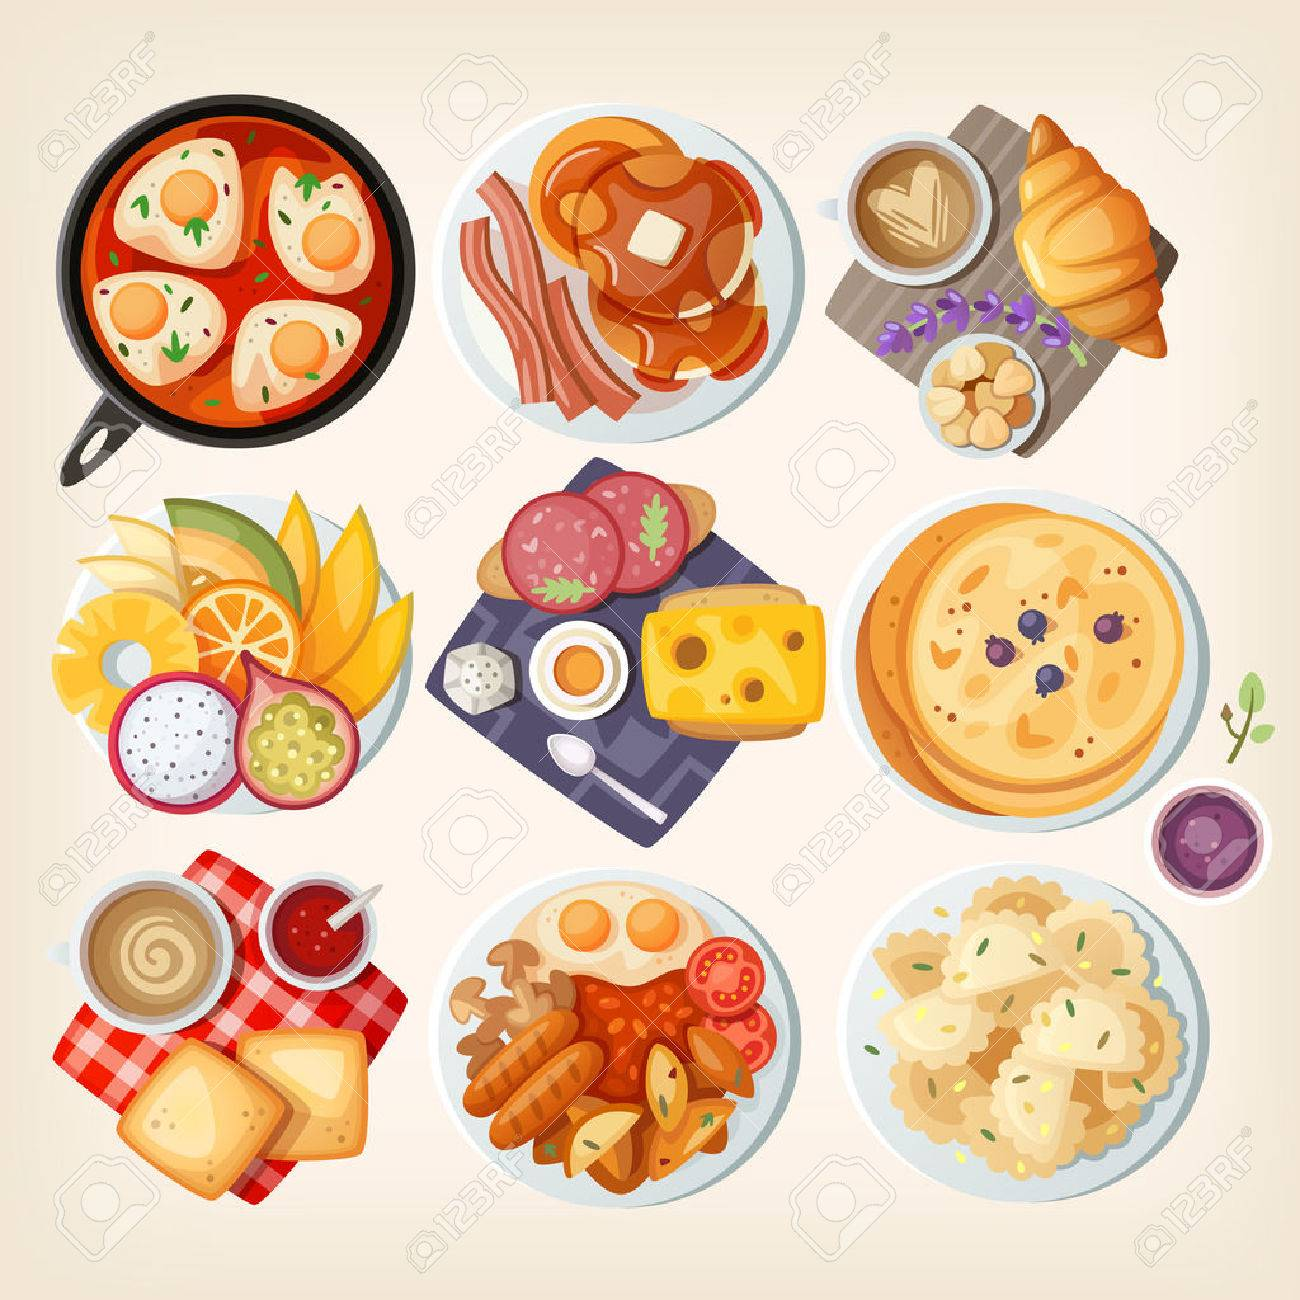 Traditional breakfast dishes from different countries: Israel, USA, France, Hawaii (USA), Denmark, Sweden, Italy, Great Britain, Poland. Vector illustrations. - 52936472